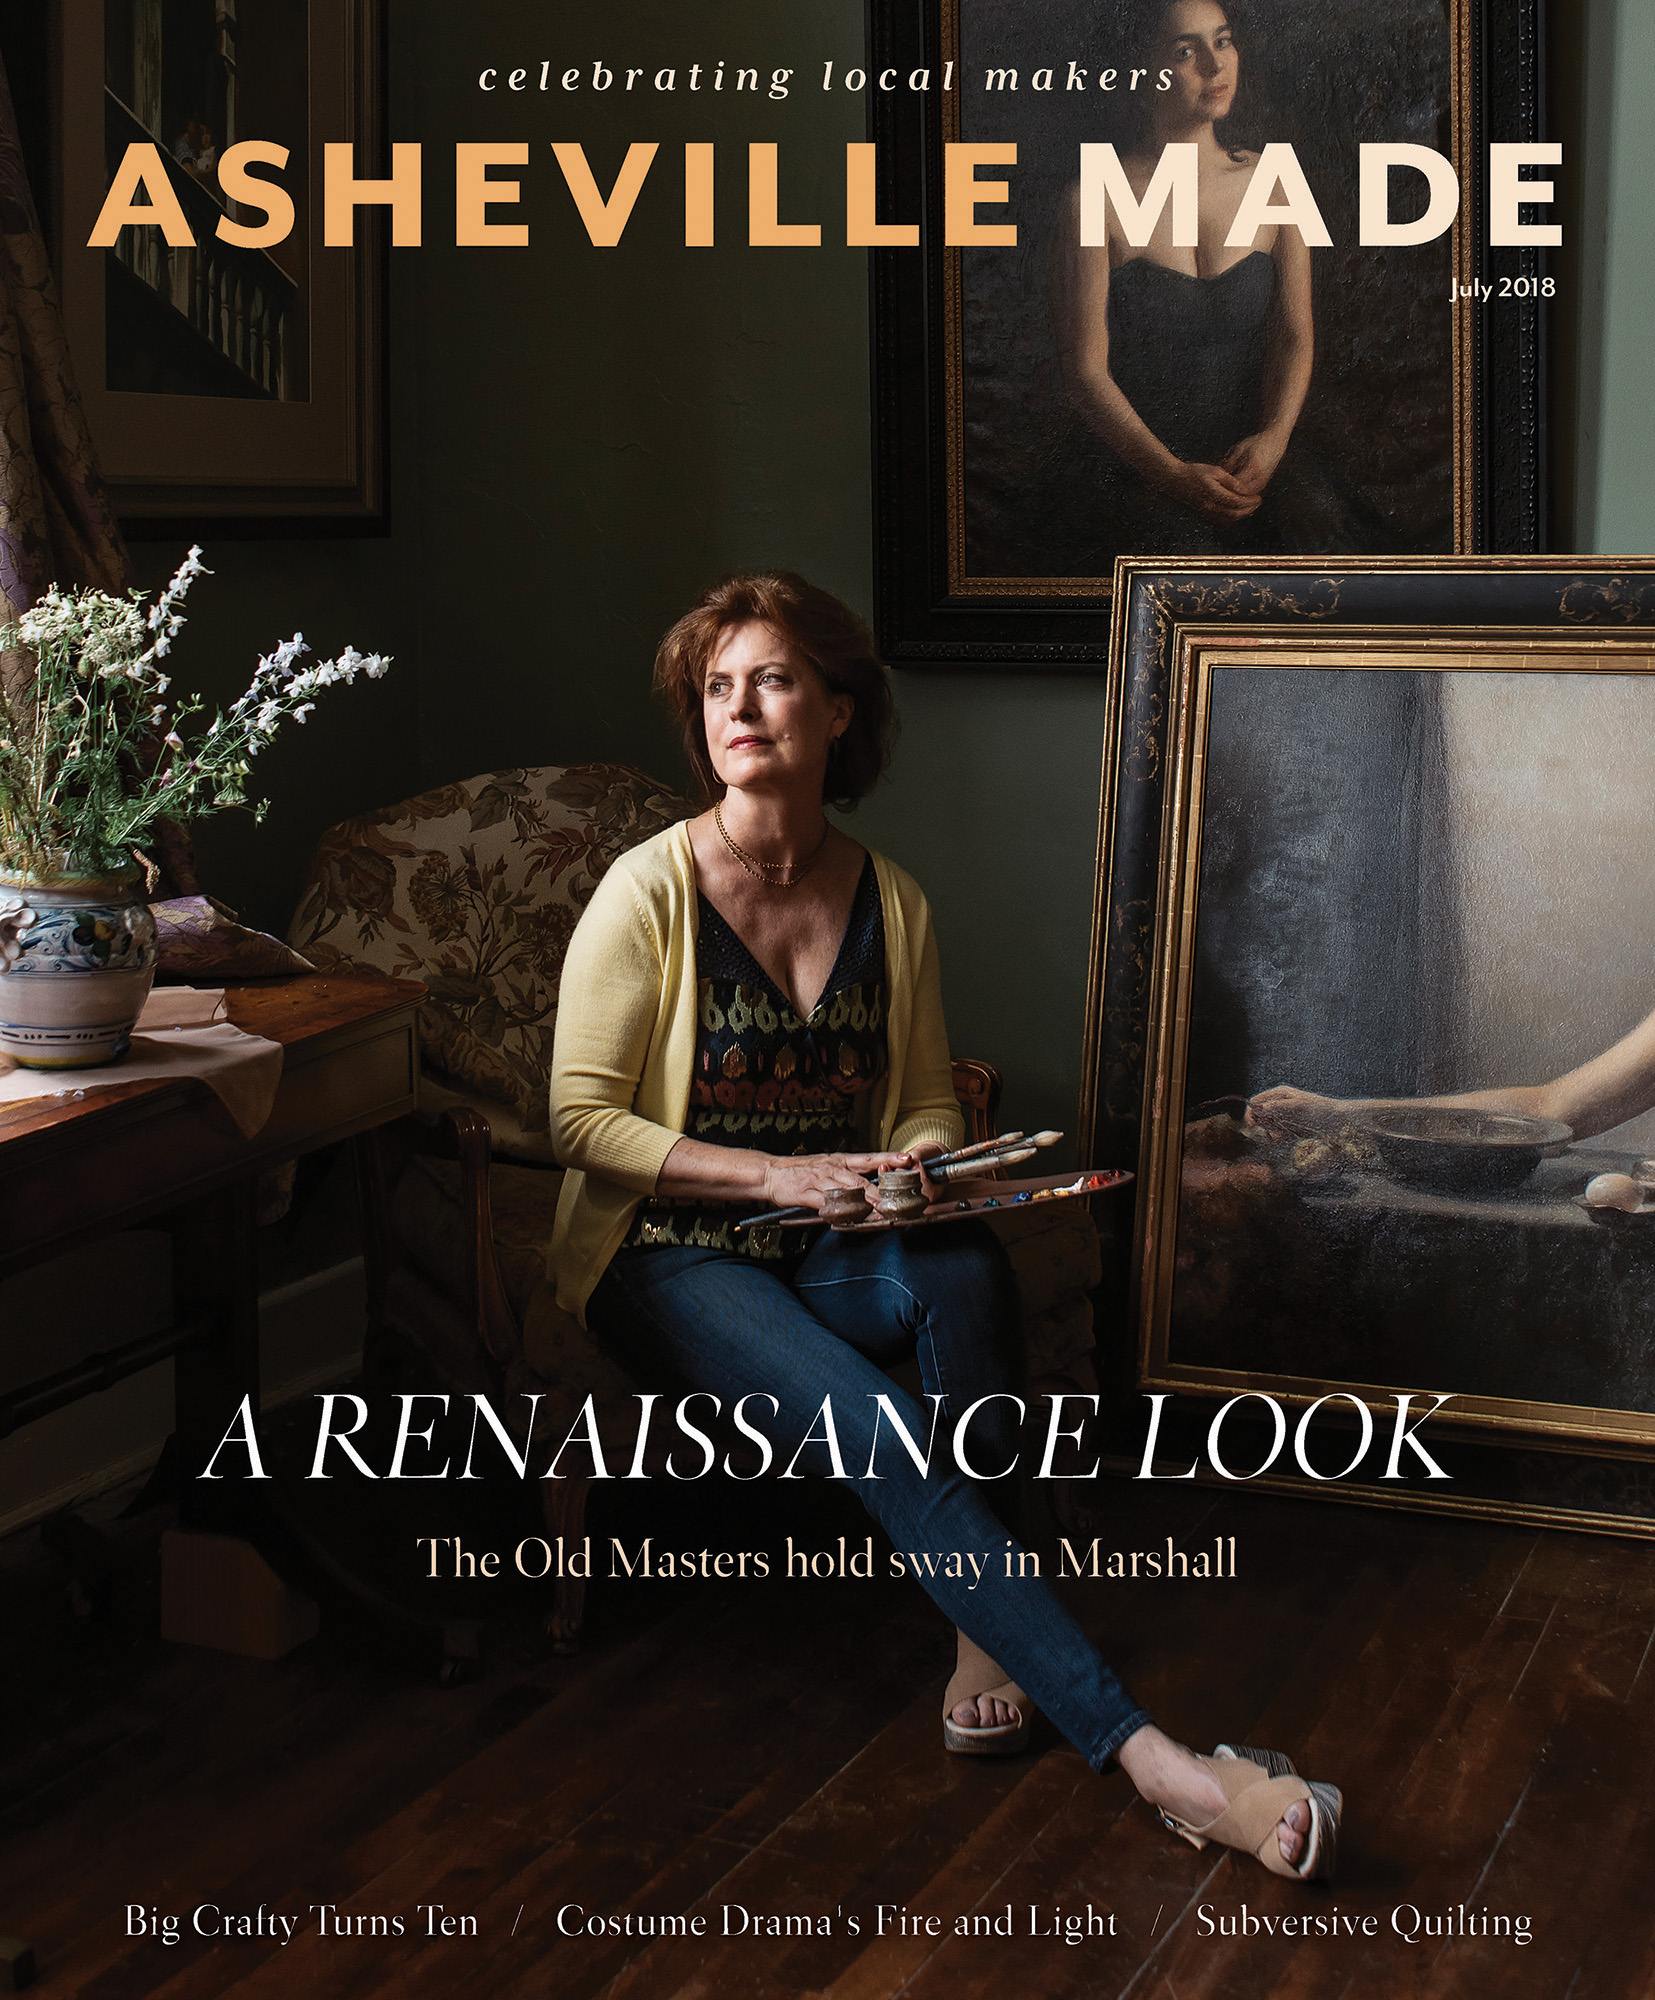 Michele Jim Ostlund Asheville Made Magazine Jack Sorokin Flame Artist Marshall commercial Photography editorial Asheville magazine cover 2018 july enviromental portraiture portrait